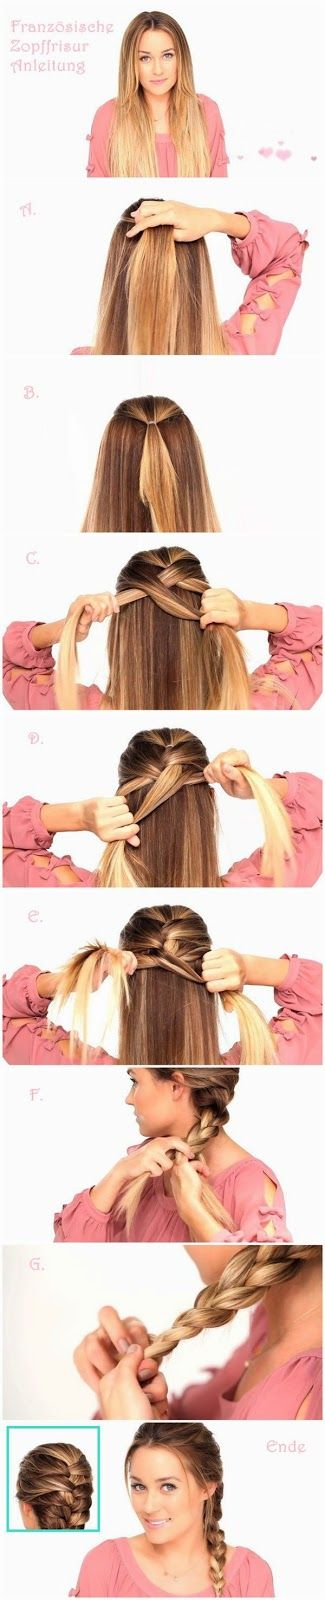 French plait hairstyle instructions